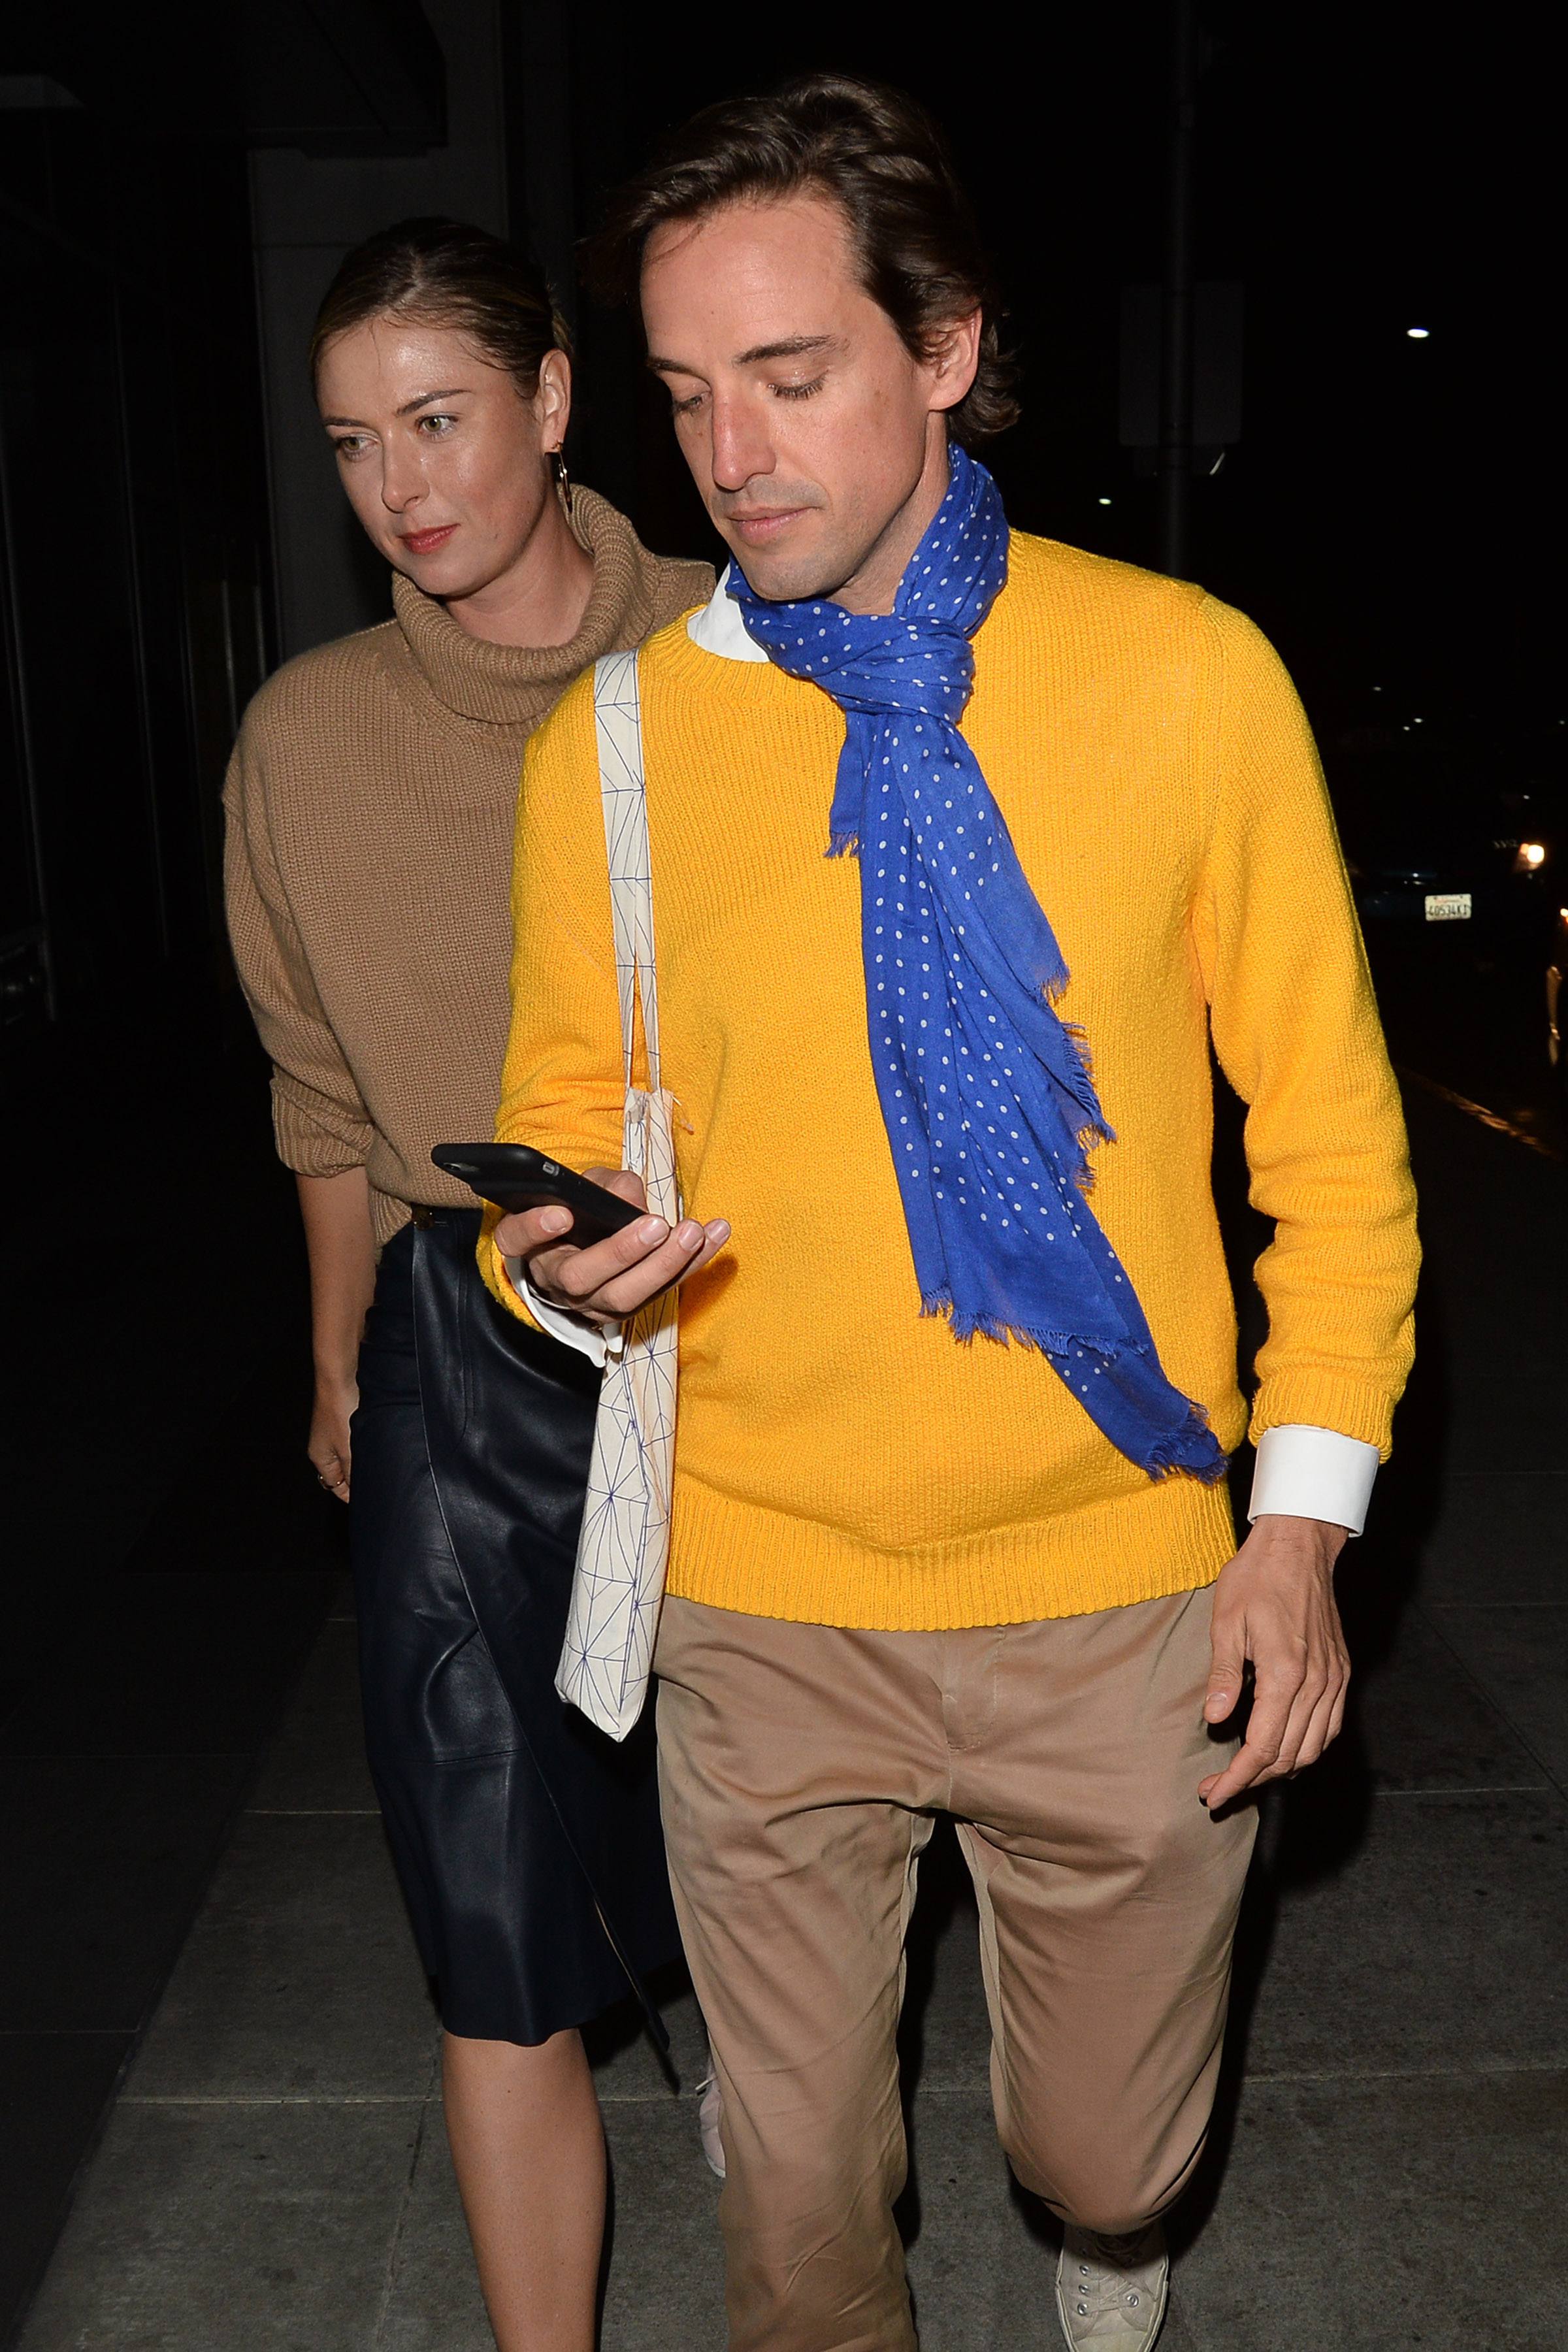 Maria Sharapova and Her Boyfriend Leave The Gagosian Gallery in Beverly Hills <P> Pictured: Maria Sharapova <B>Ref: SPL1666084  010318  </B><BR/> Picture by: All Access Photo / Splash News<BR/> </P><P> <B>Splash News and Pictures</B><BR/> Los Angeles:310-821-2666<BR/> New York:212-619-2666<BR/> London:870-934-2666<BR/> <span id=